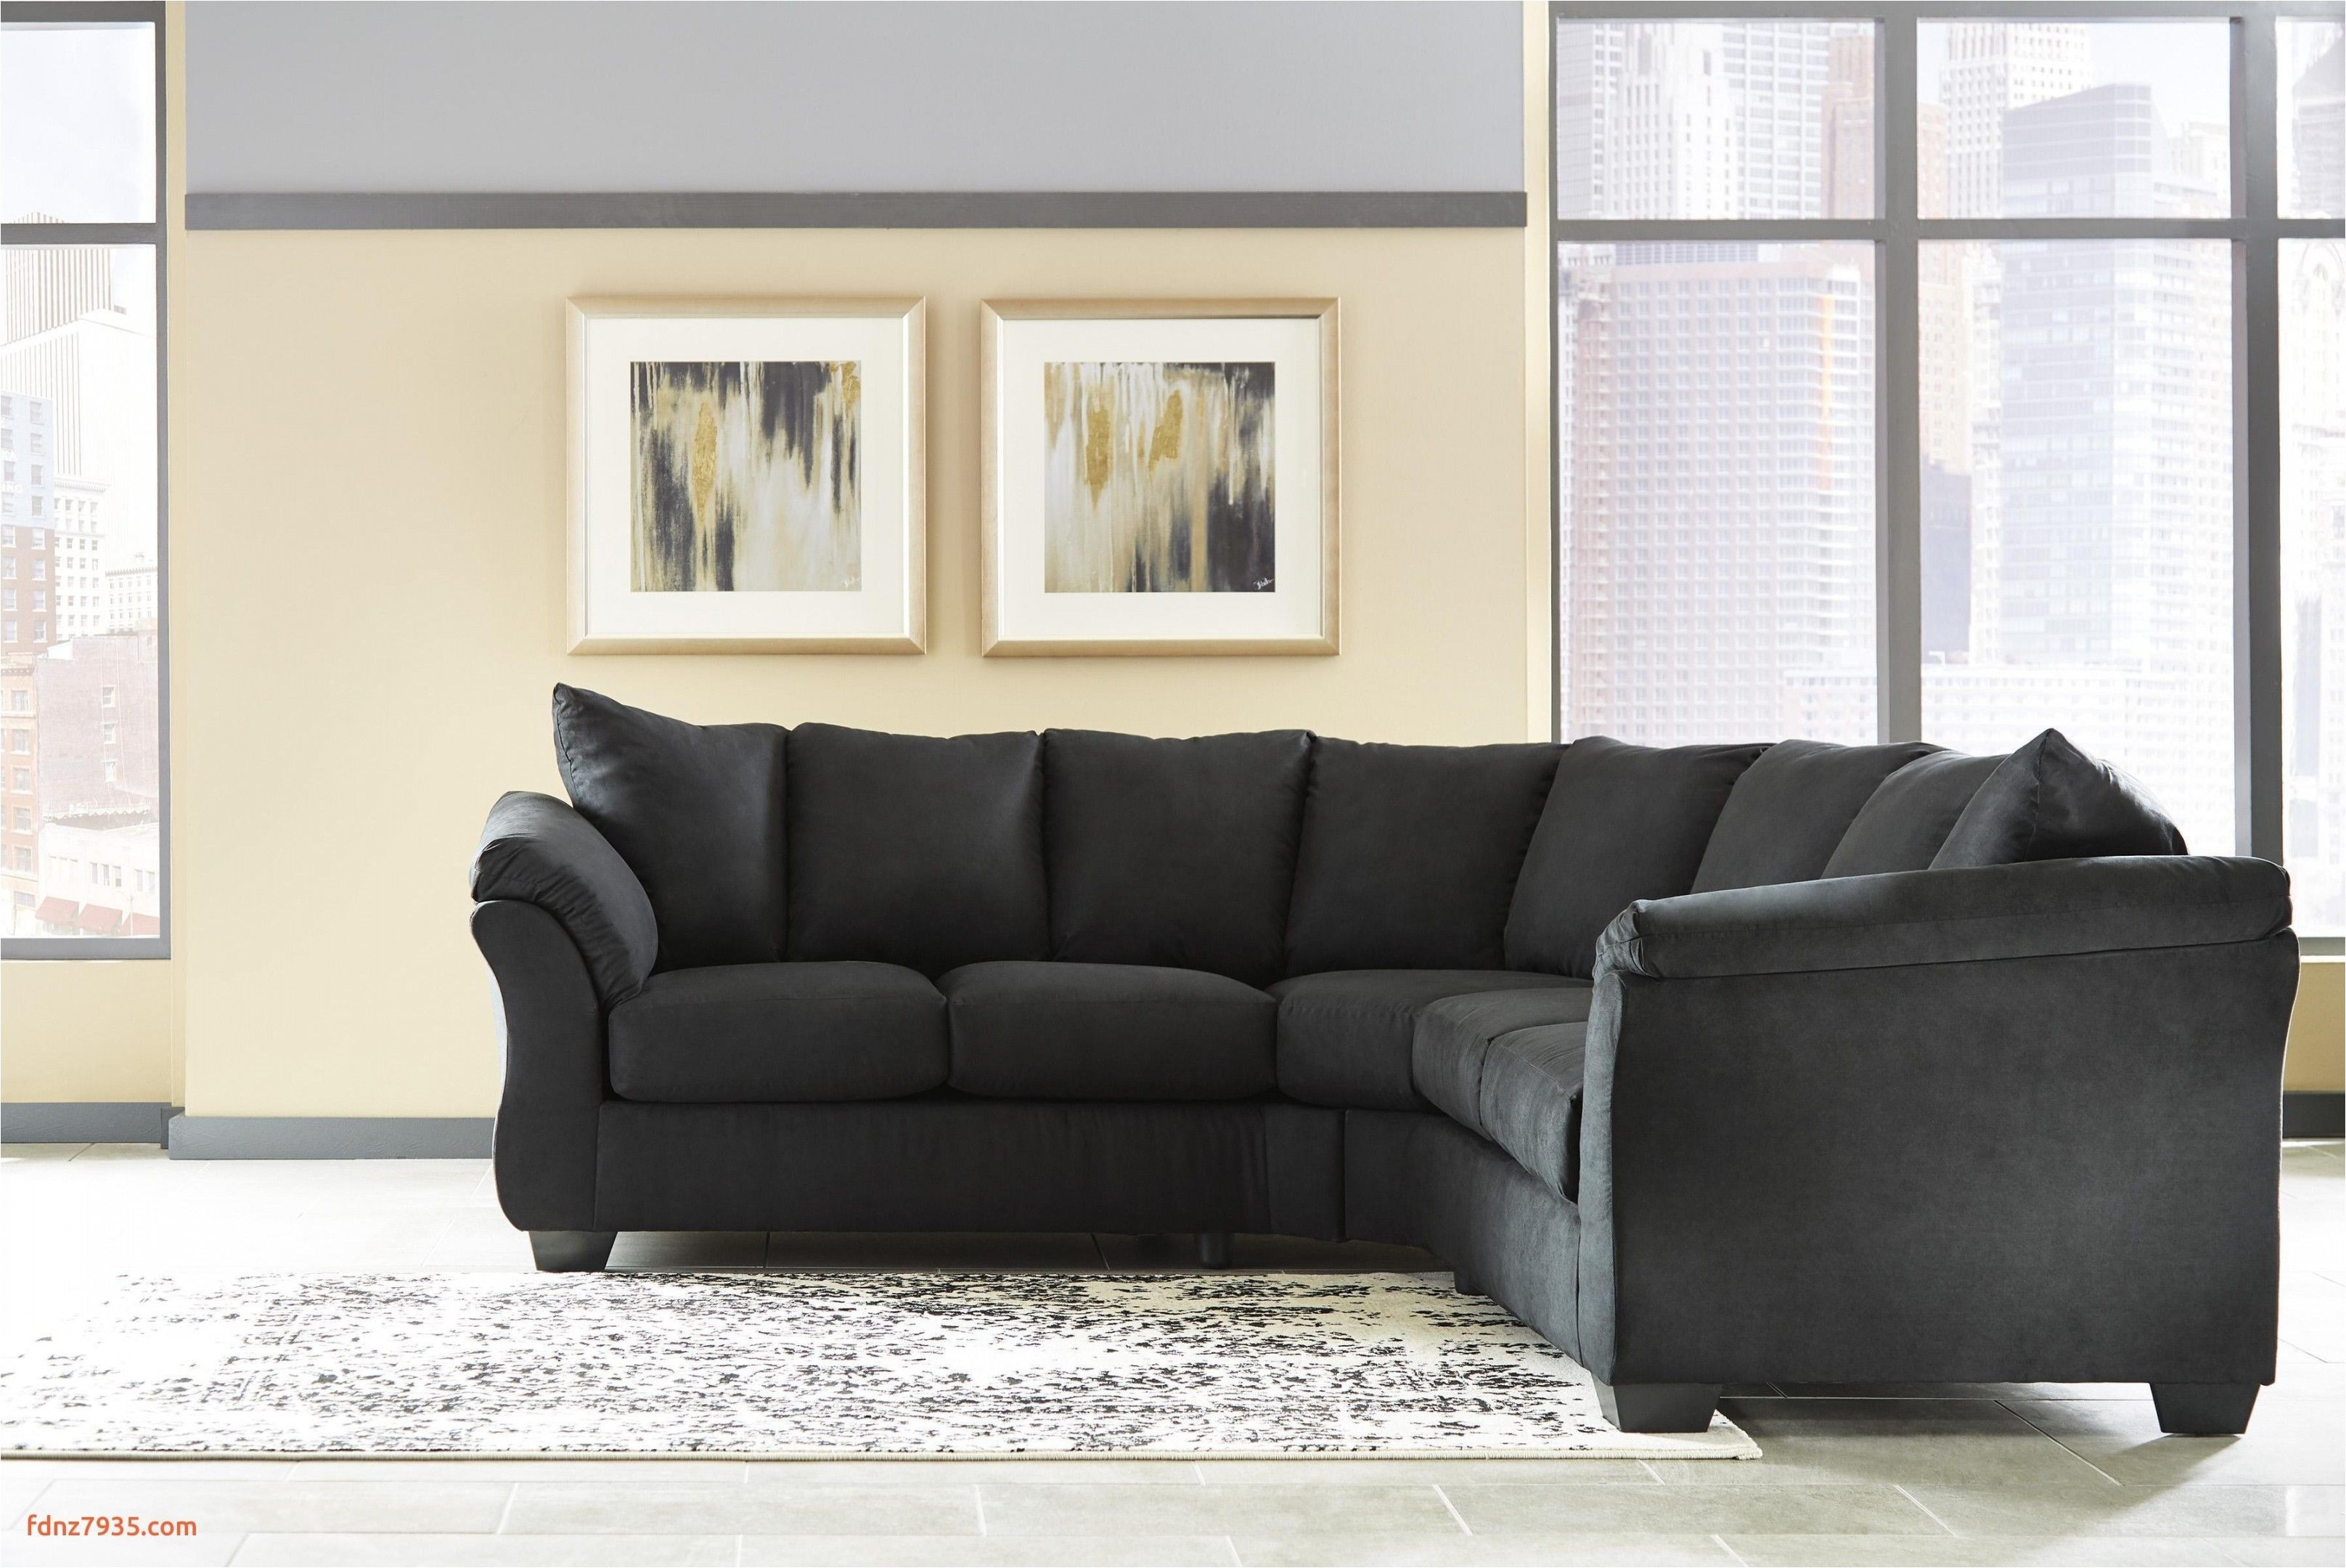 Beautiful Victorian Living Room Furniture For Sale Sofas For Small Spaces Sofa Design Couches For Small Spaces